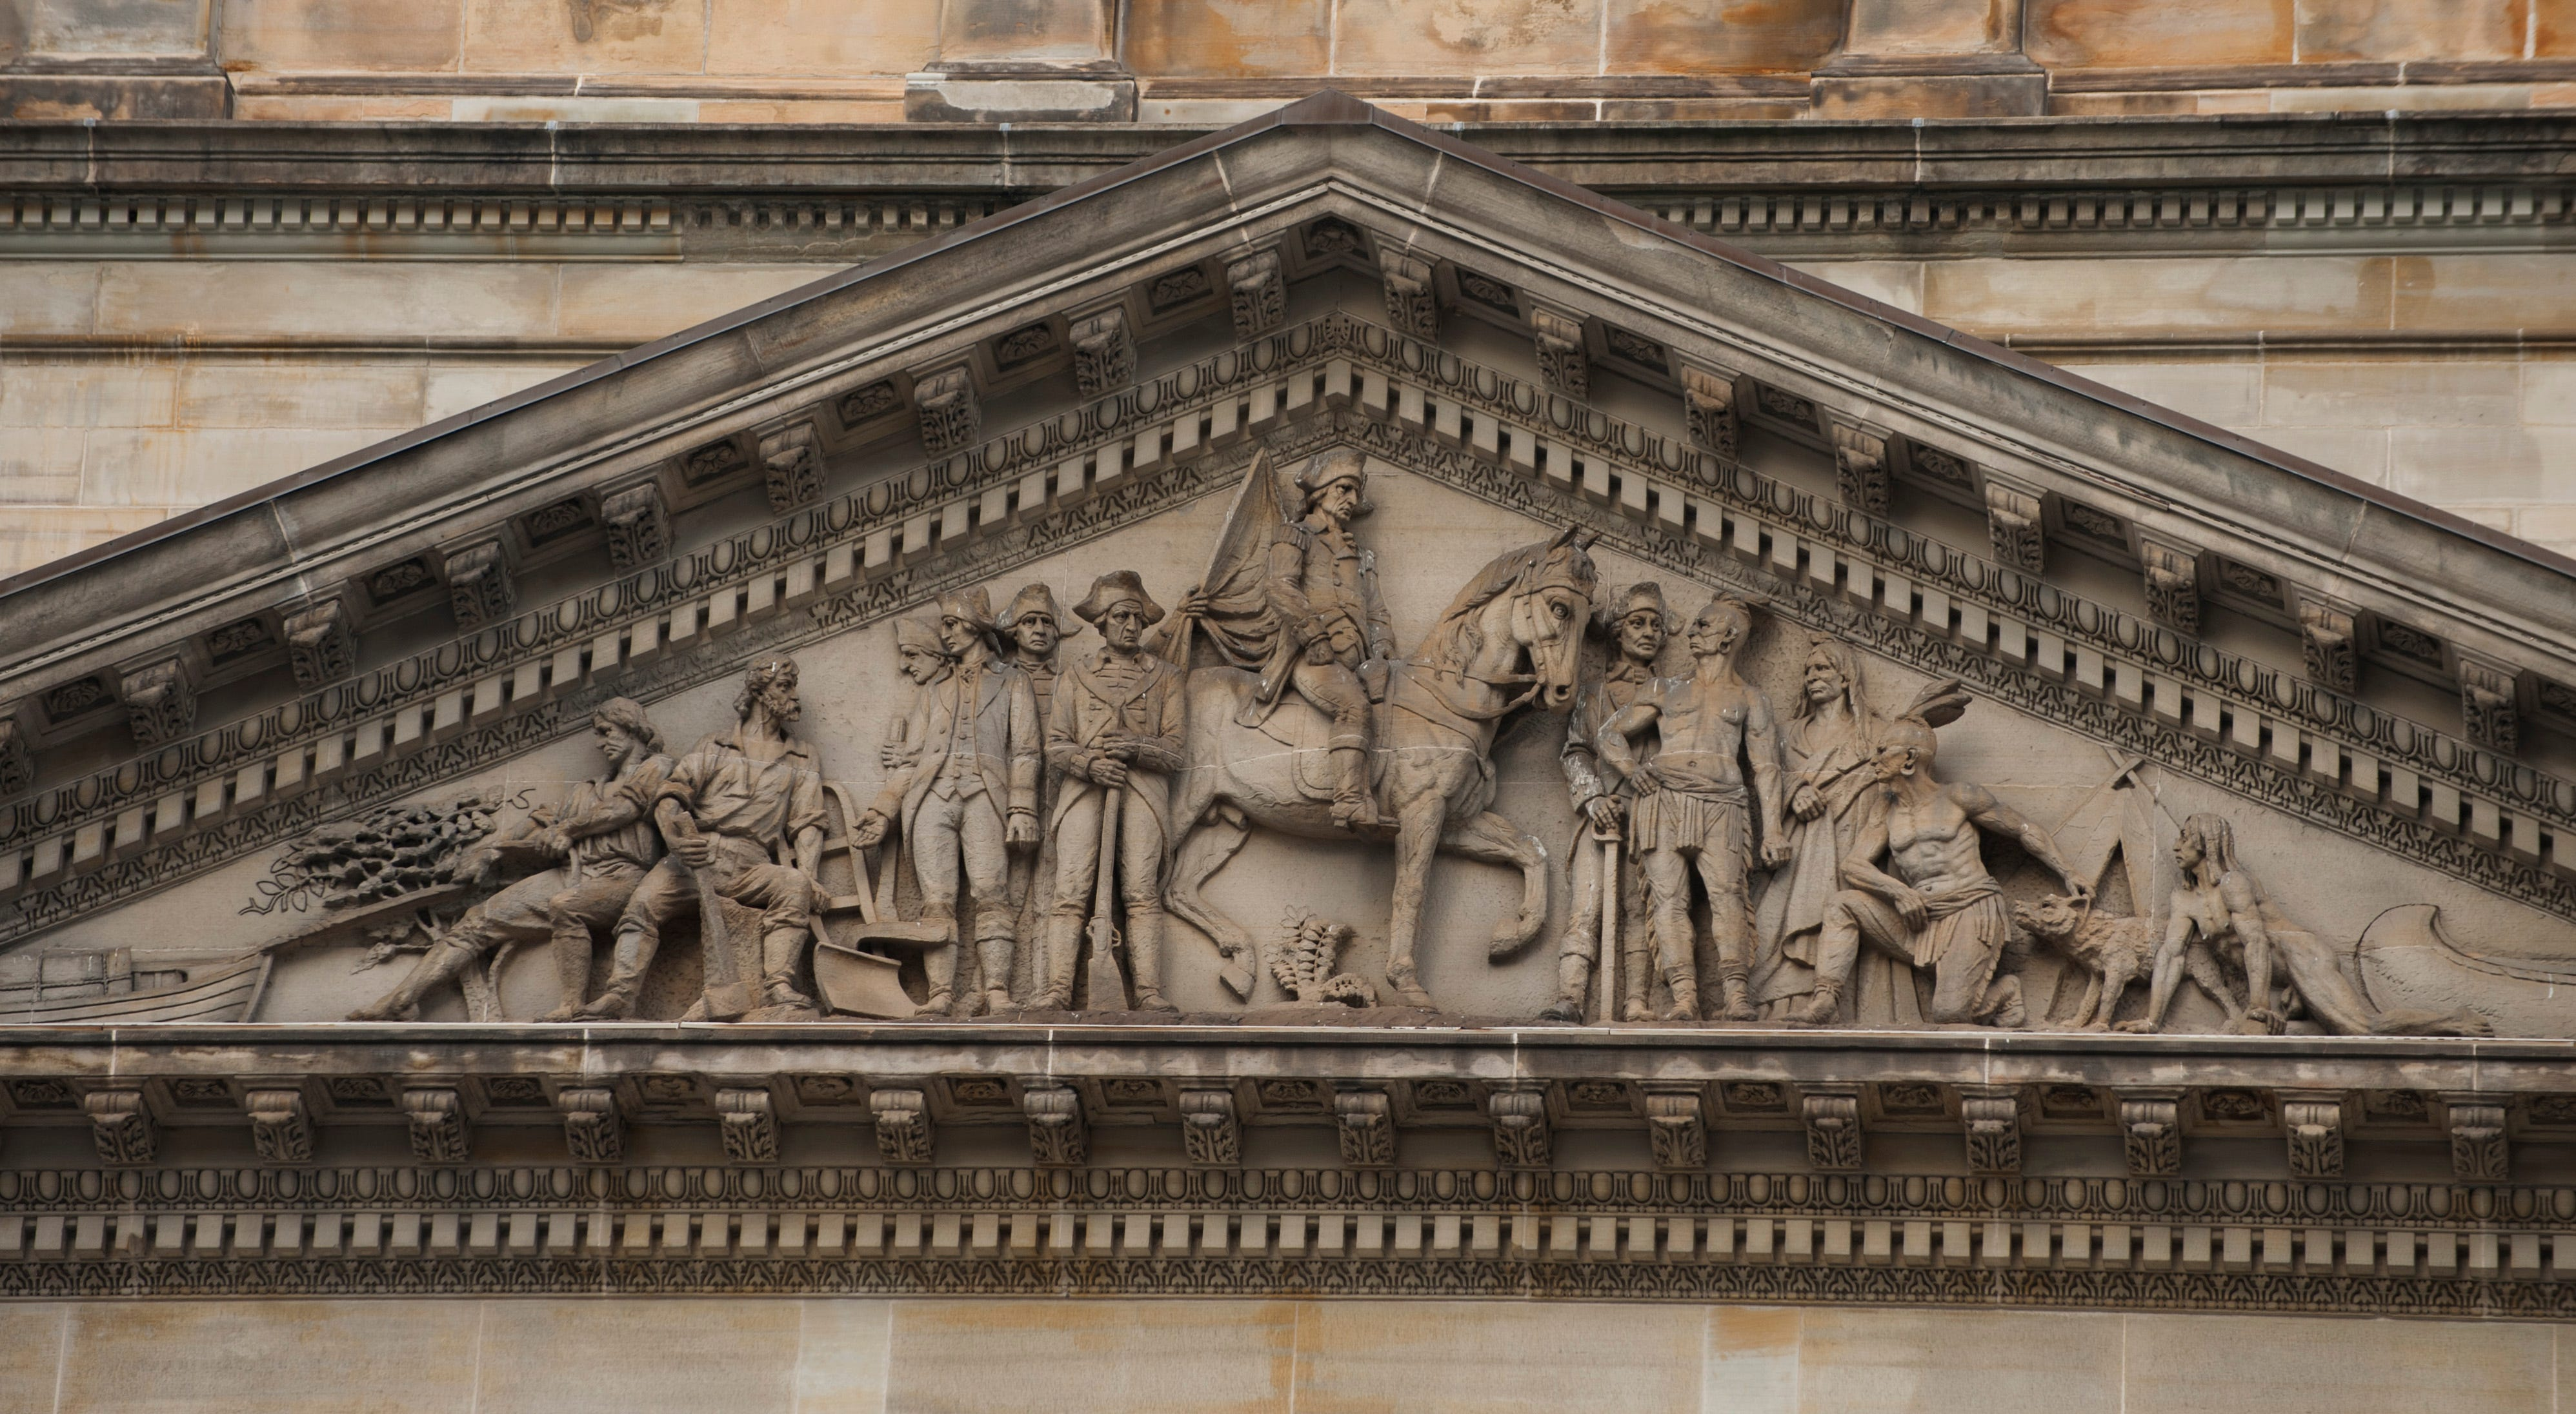 Above the main entrance on Randolph is a frieze showing Gen. Anthony Wayne, after whom the county is named, with soldiers, settlers and native Americans.